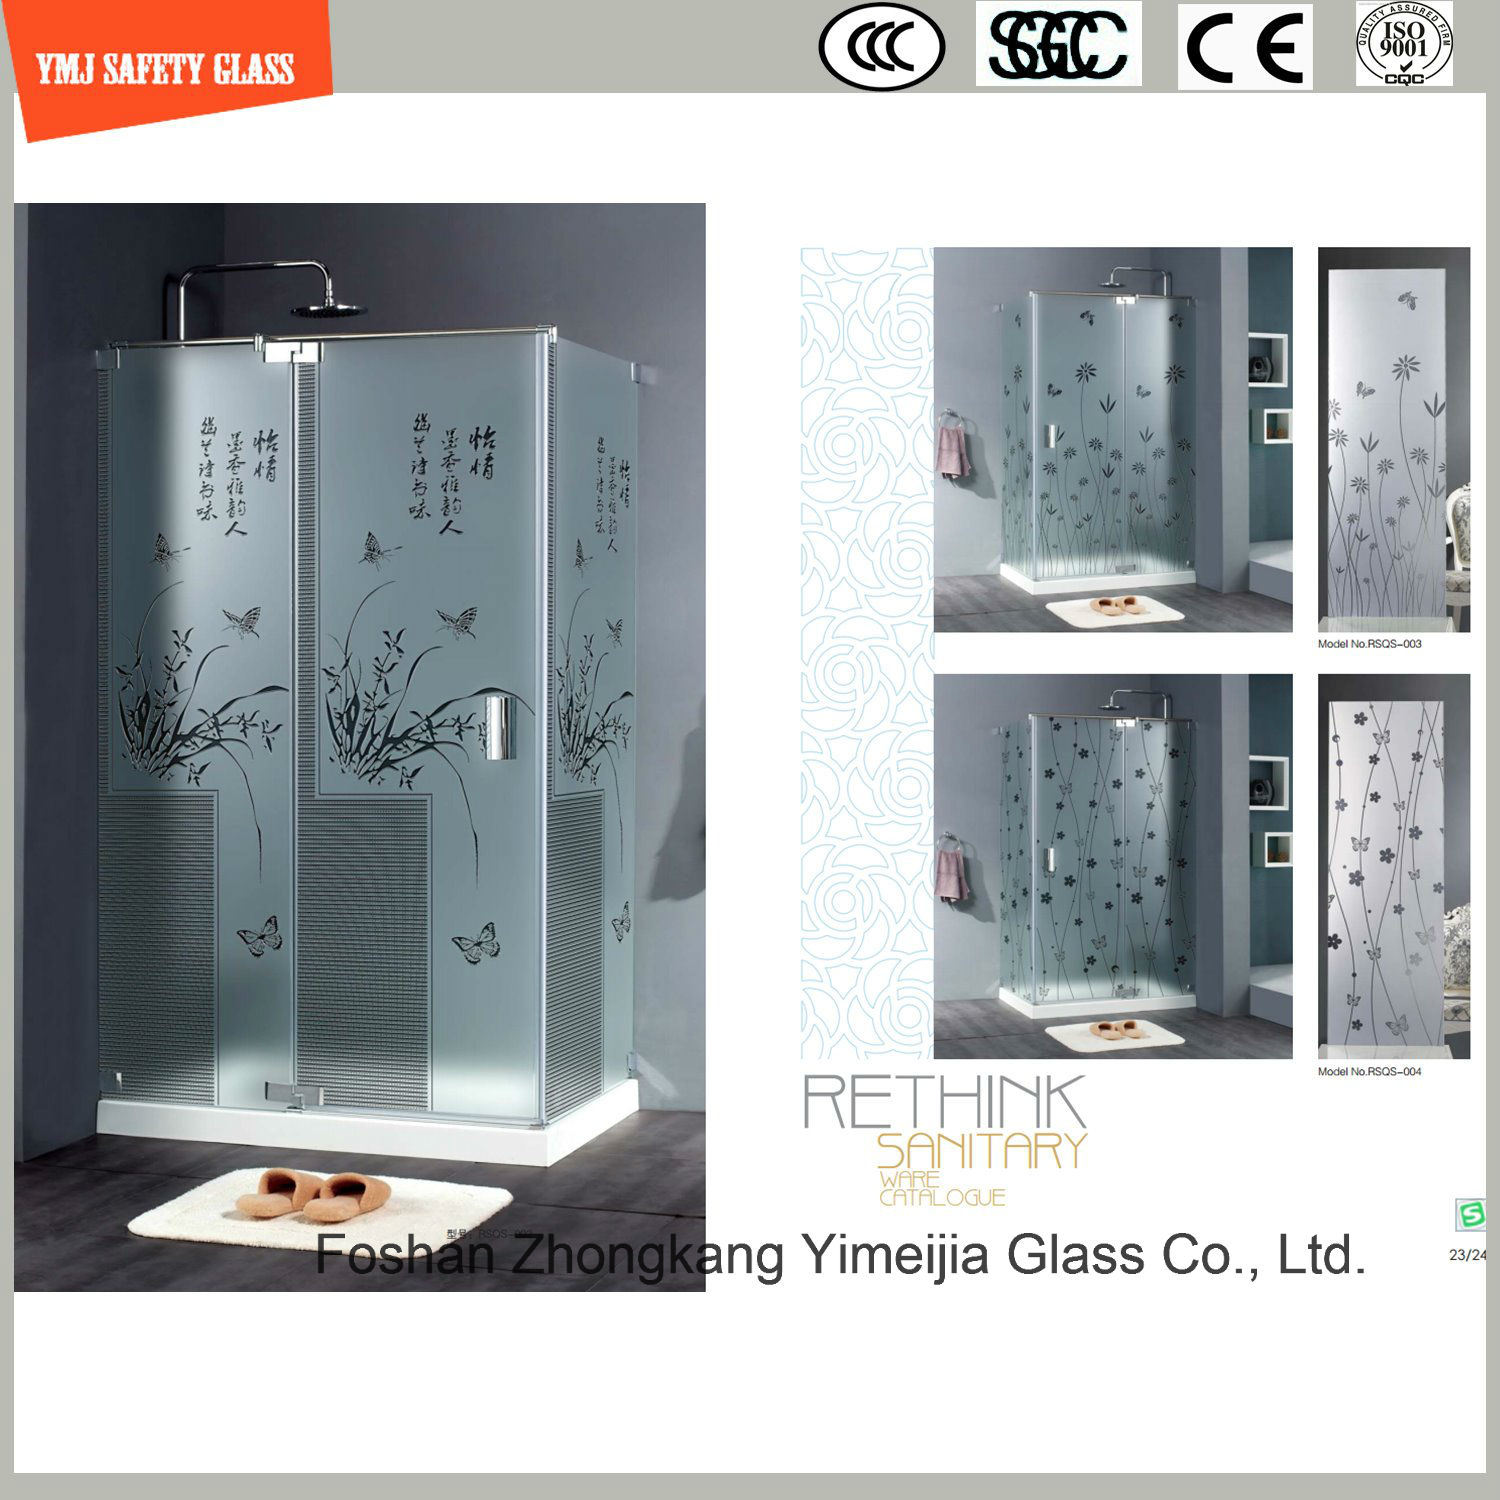 Hot Item 4 19mm Silkscreen Print Acid Etch Frosted Pattern Flat Bent Tempered Toughened Glass For Door Window Shower Door In Hotel And Home